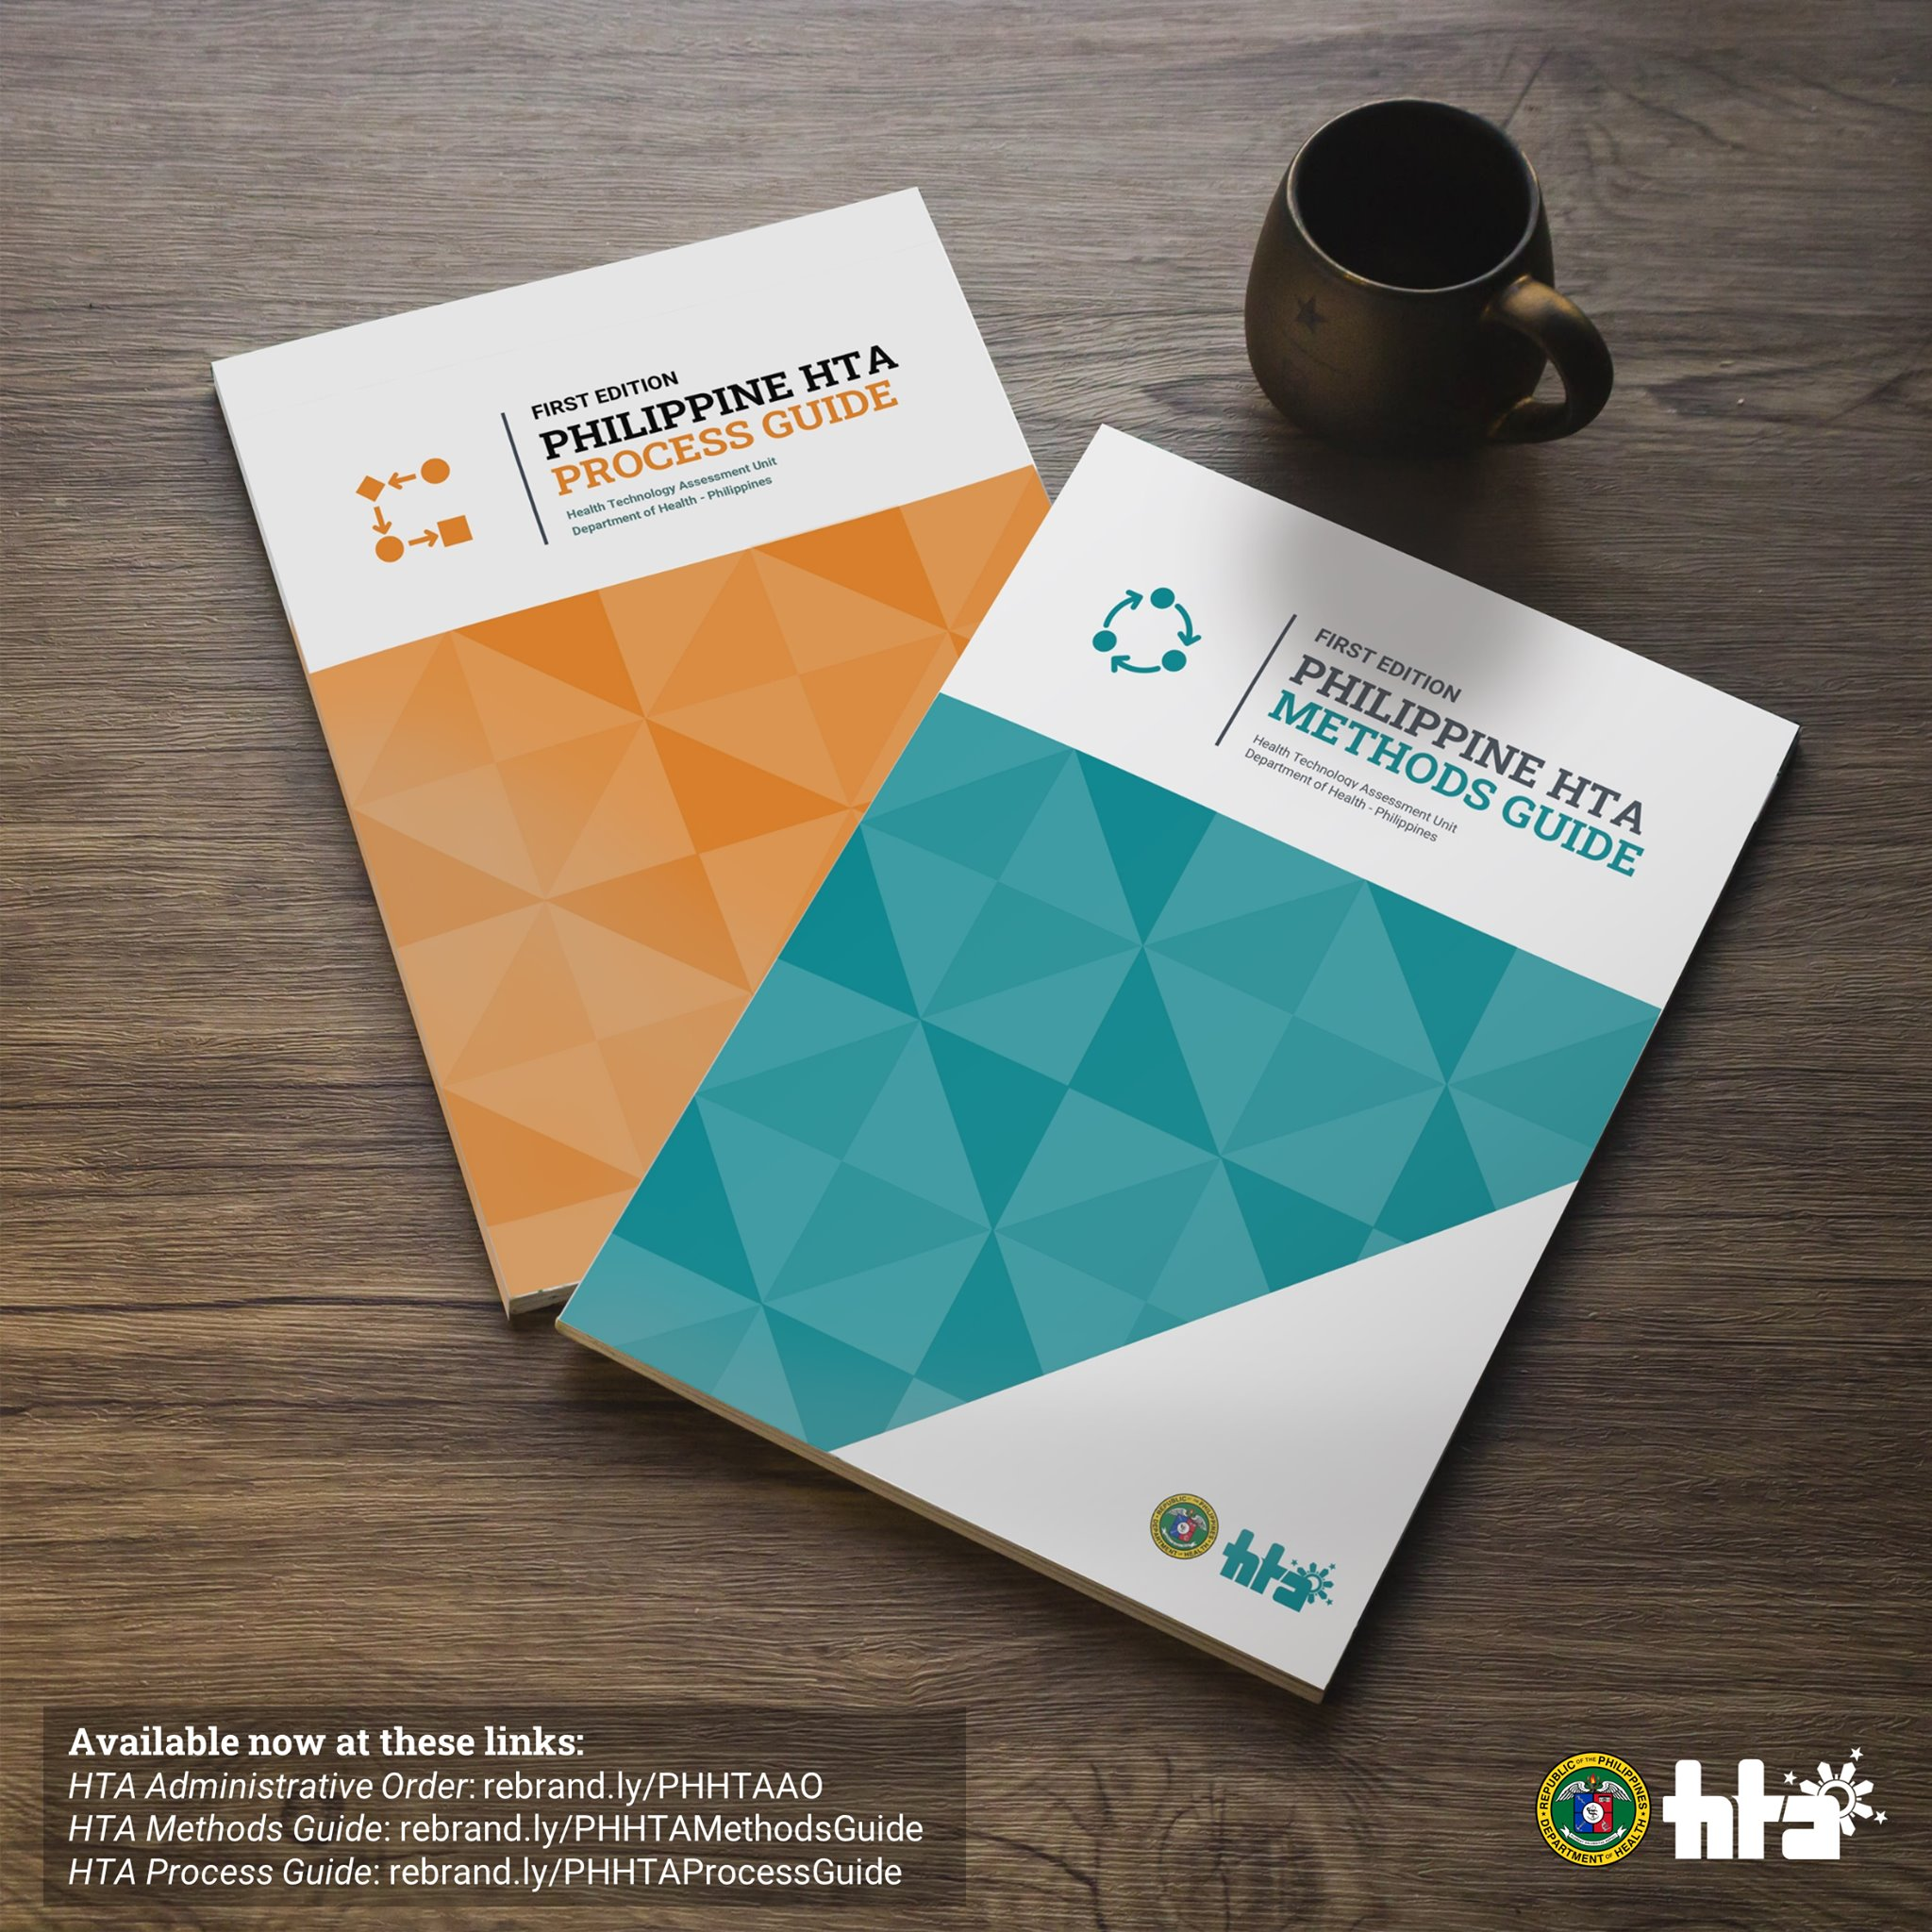 Philippine HTA Process Guide and HTA Methods Guide supporting the Administrative Order No. 2020-0041